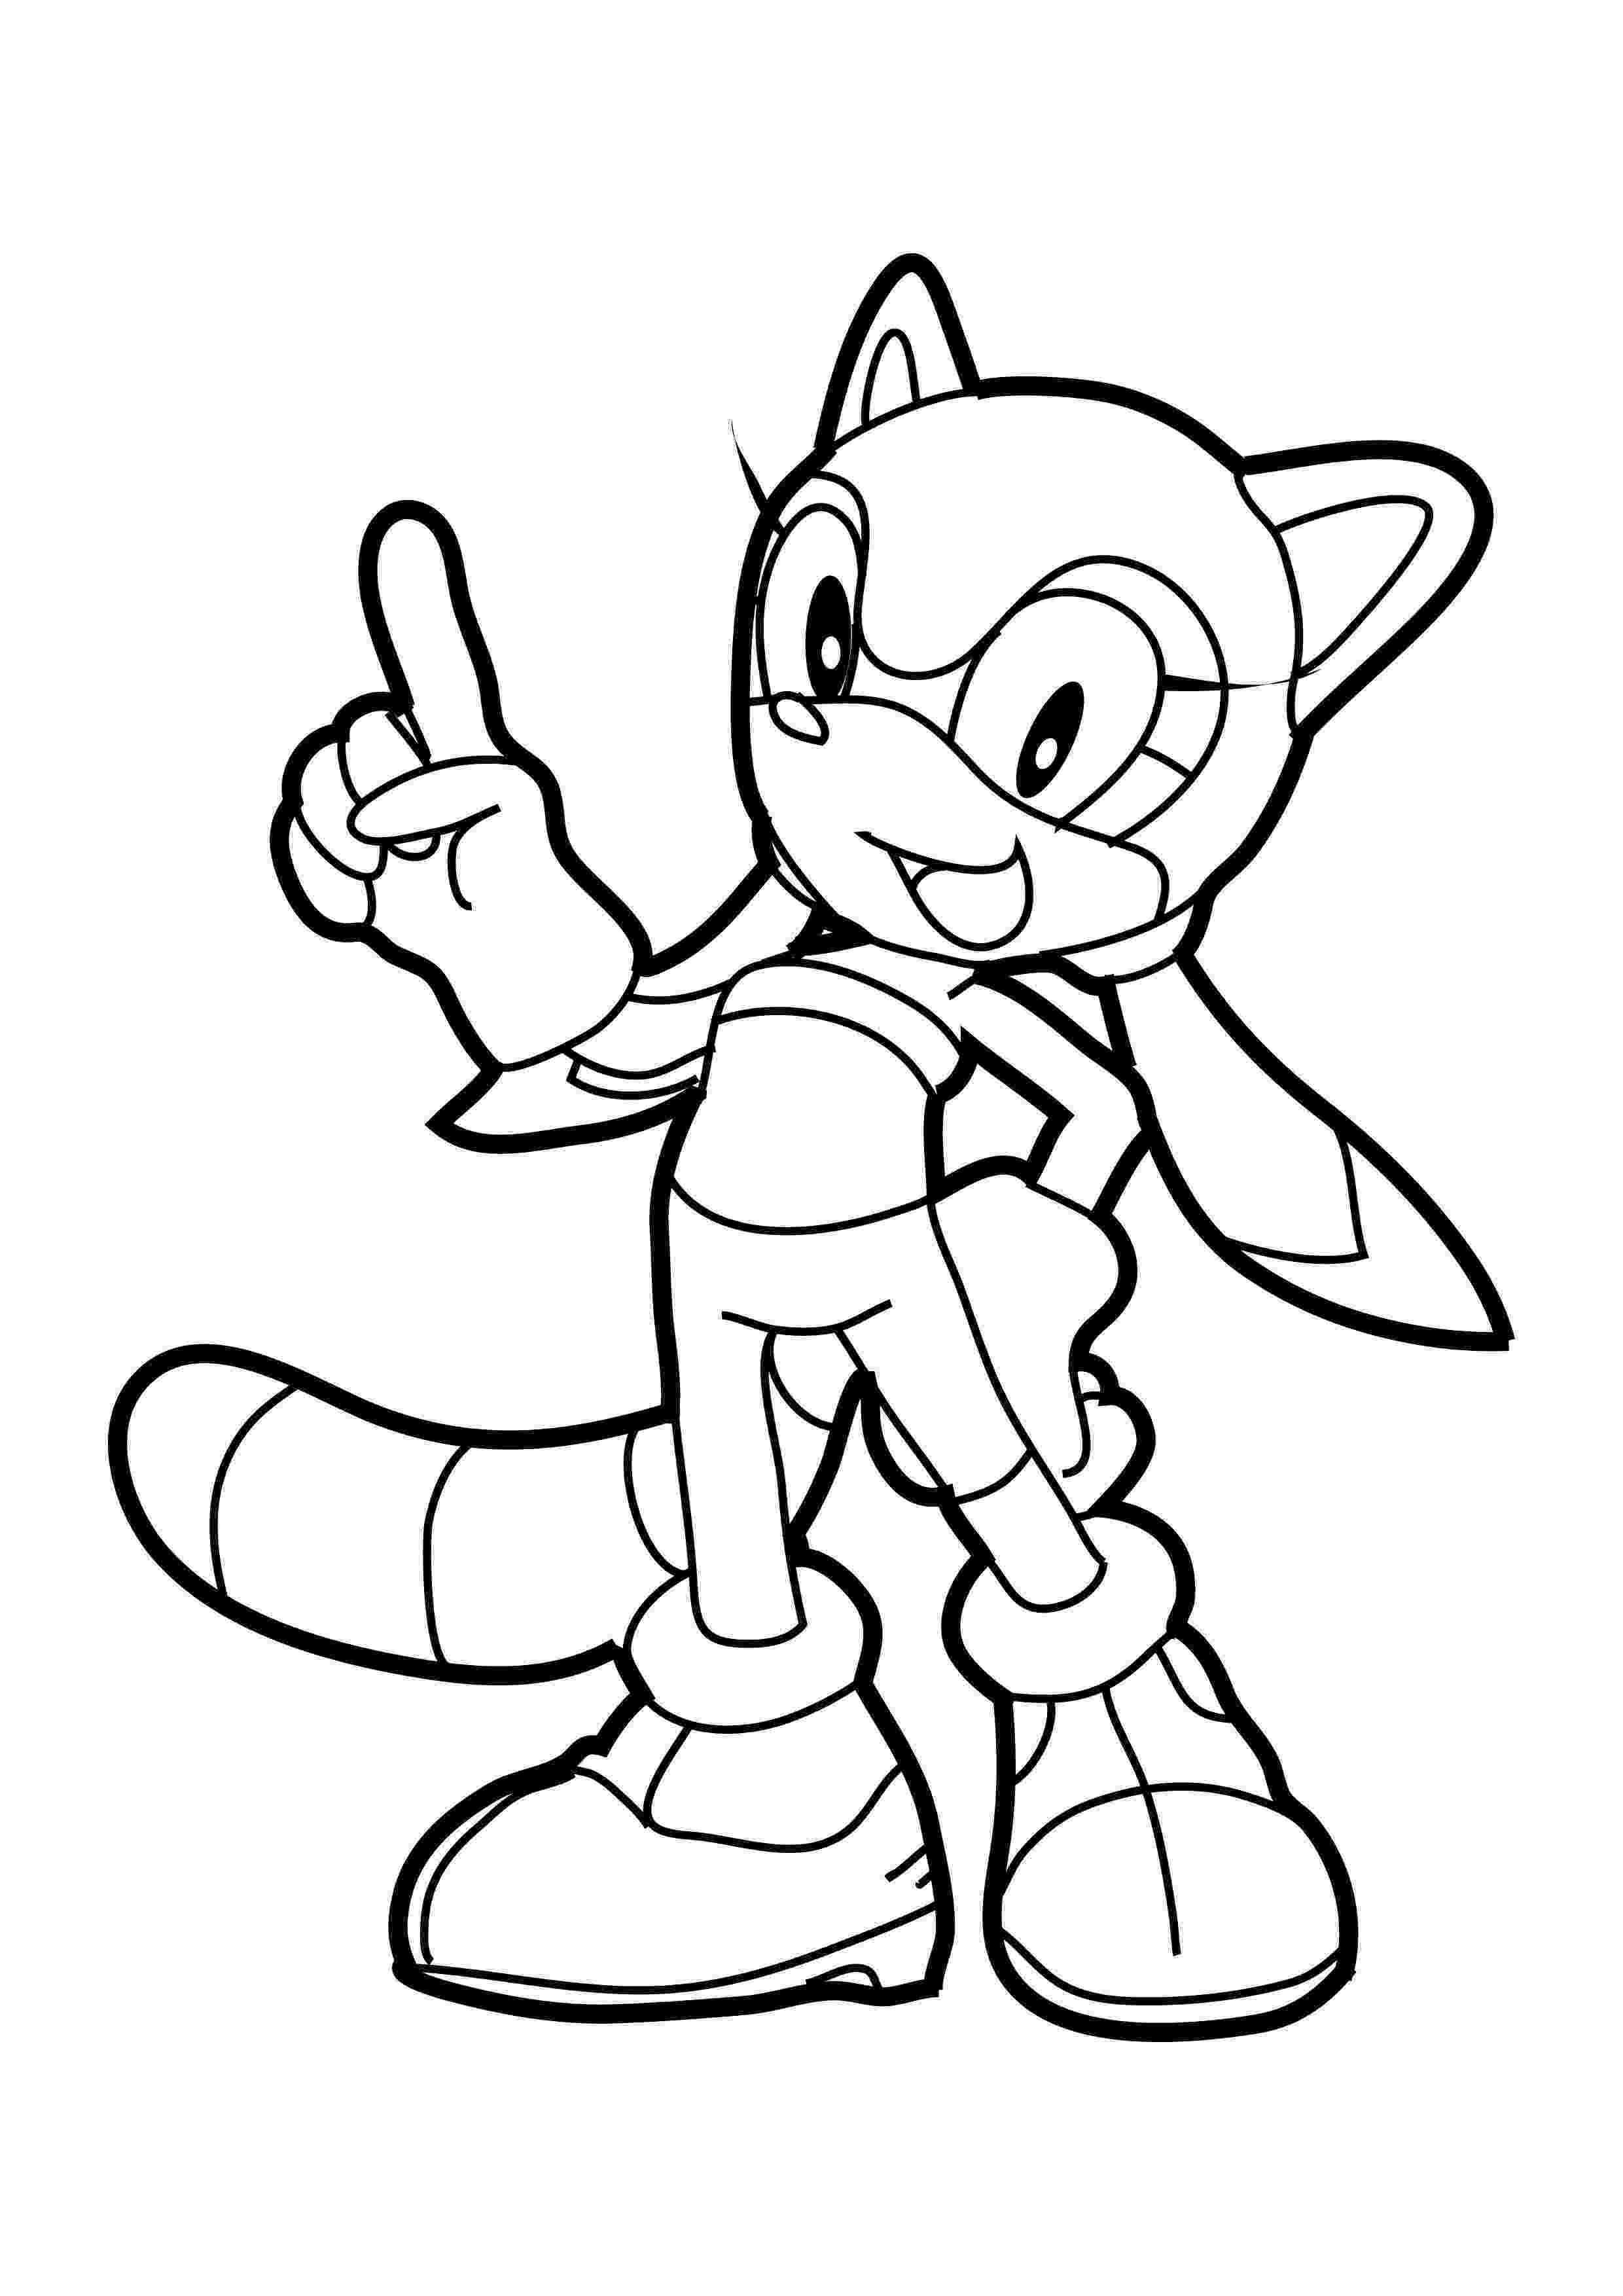 printable sonic coloring pages sonic coloring pages team colors printable coloring pages sonic